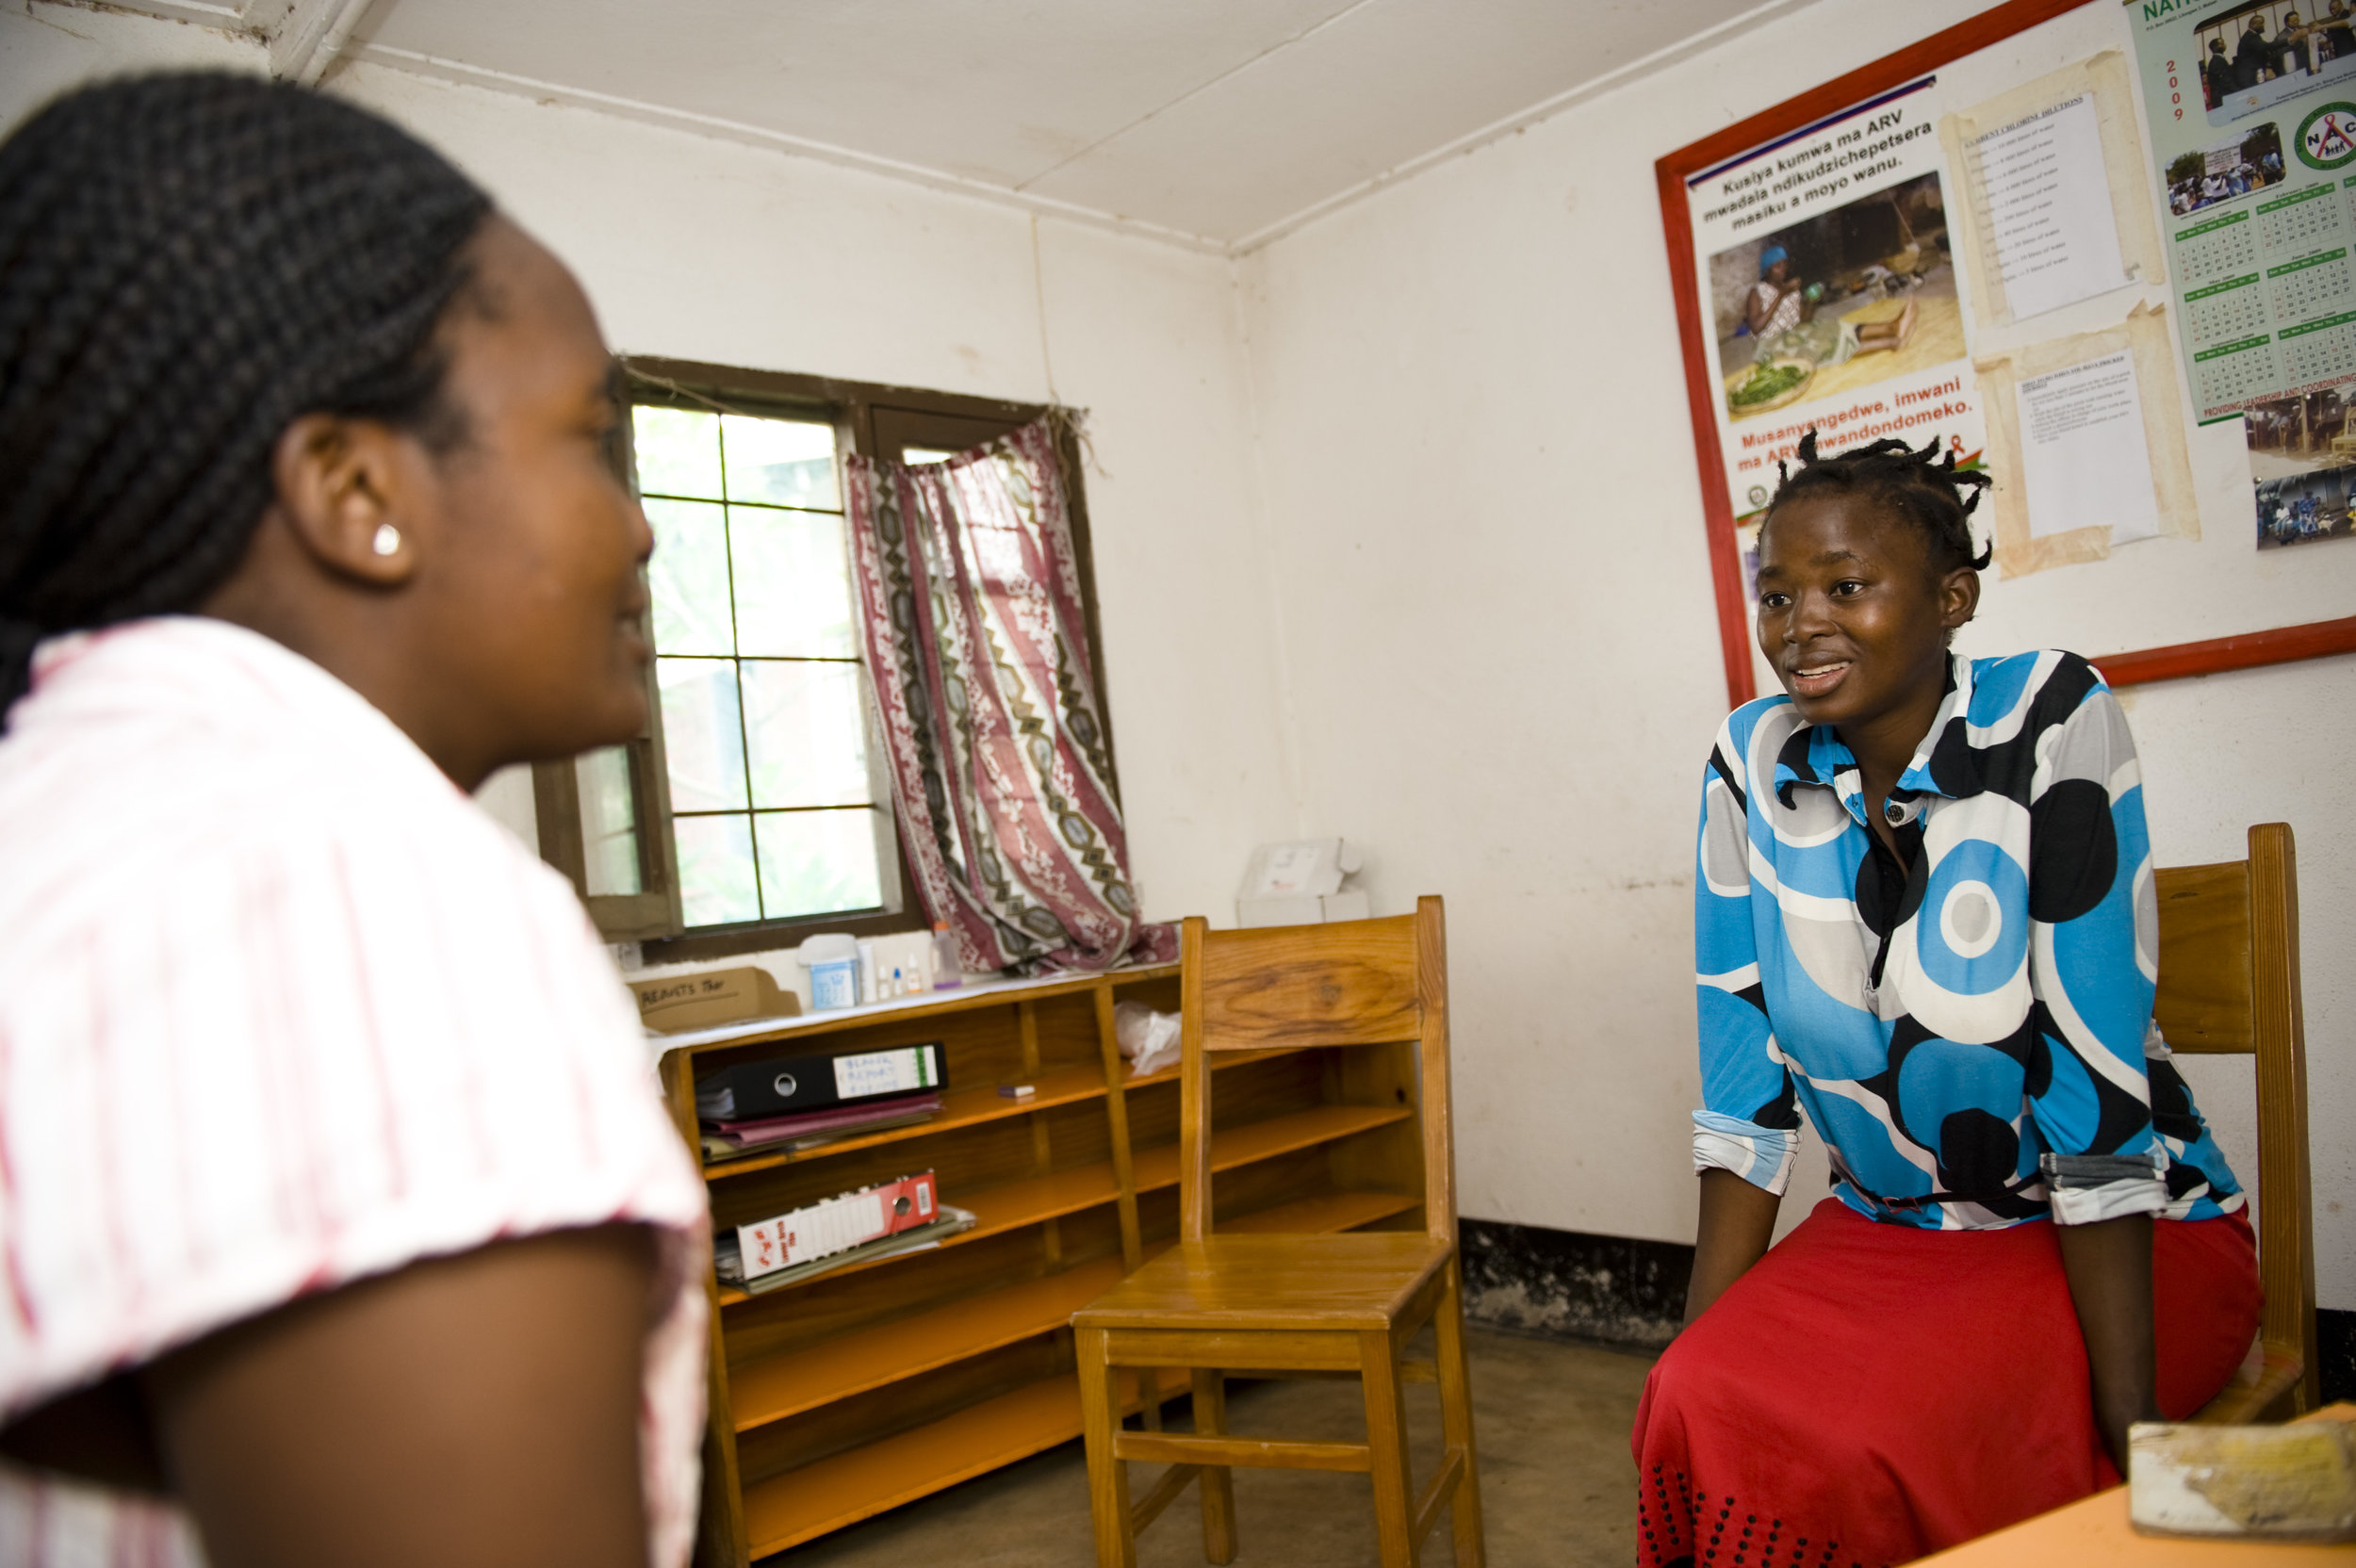 A woman talks with a counselor at a community testing facility